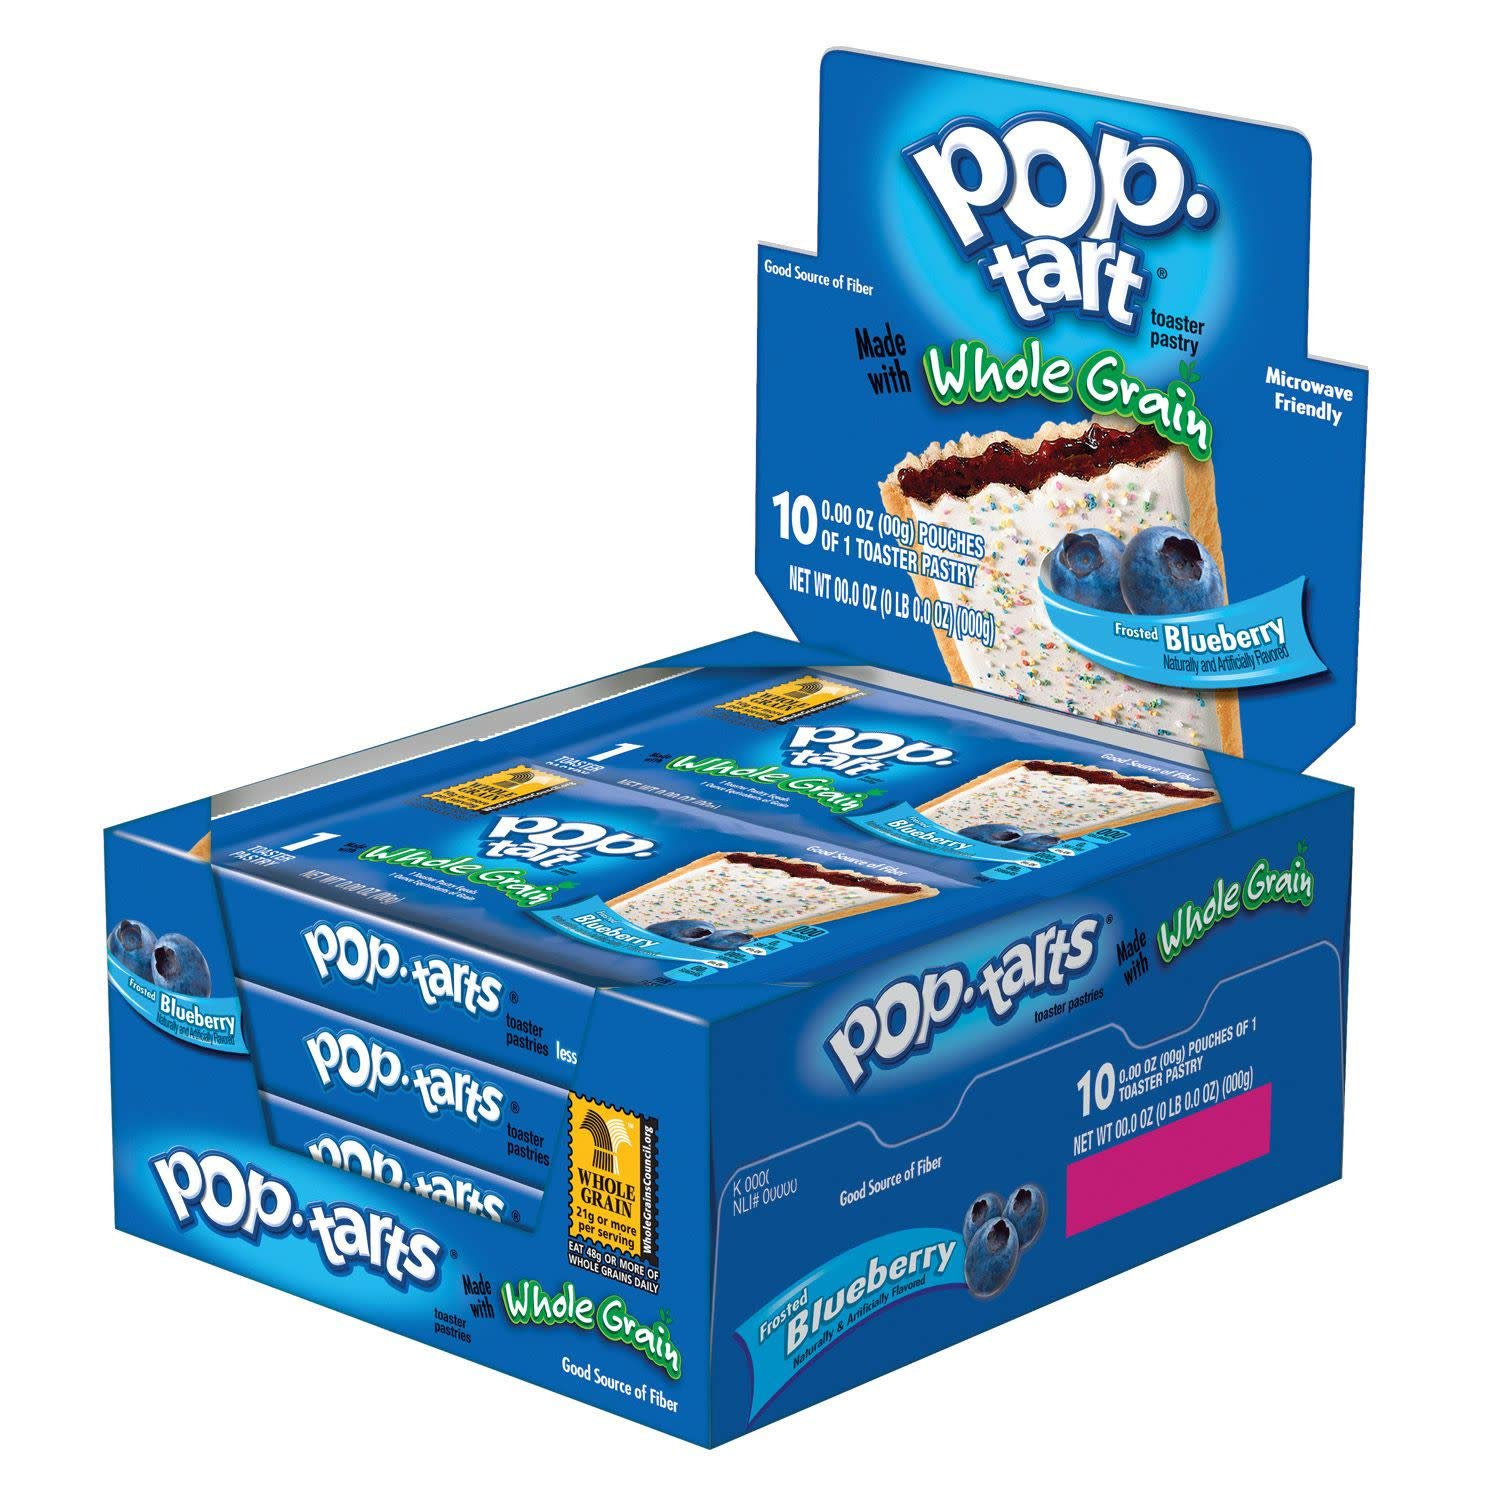 Pop-Tart Made with Whole Grain, Toaster Pastries, Frosted Blueberry, 1.76oz (120 Count)